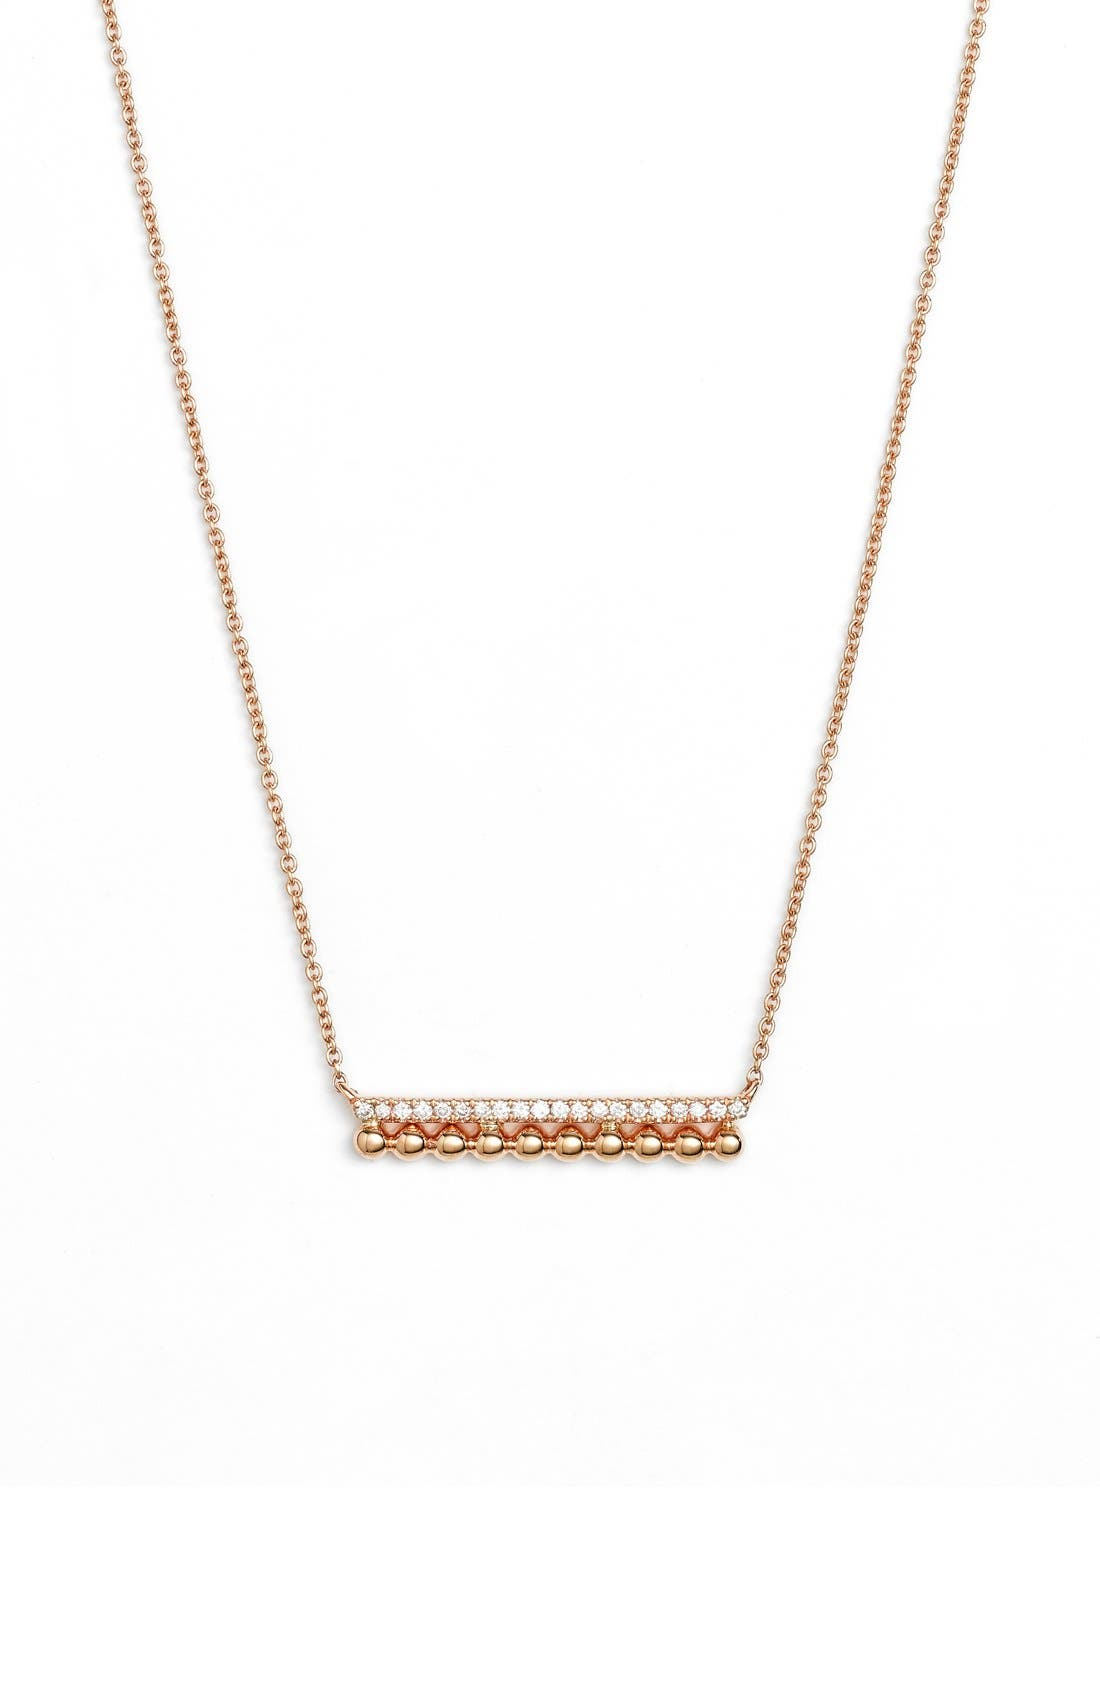 Dana Rebecca Designs 'Poppy Rae' Bar Pendant Necklace